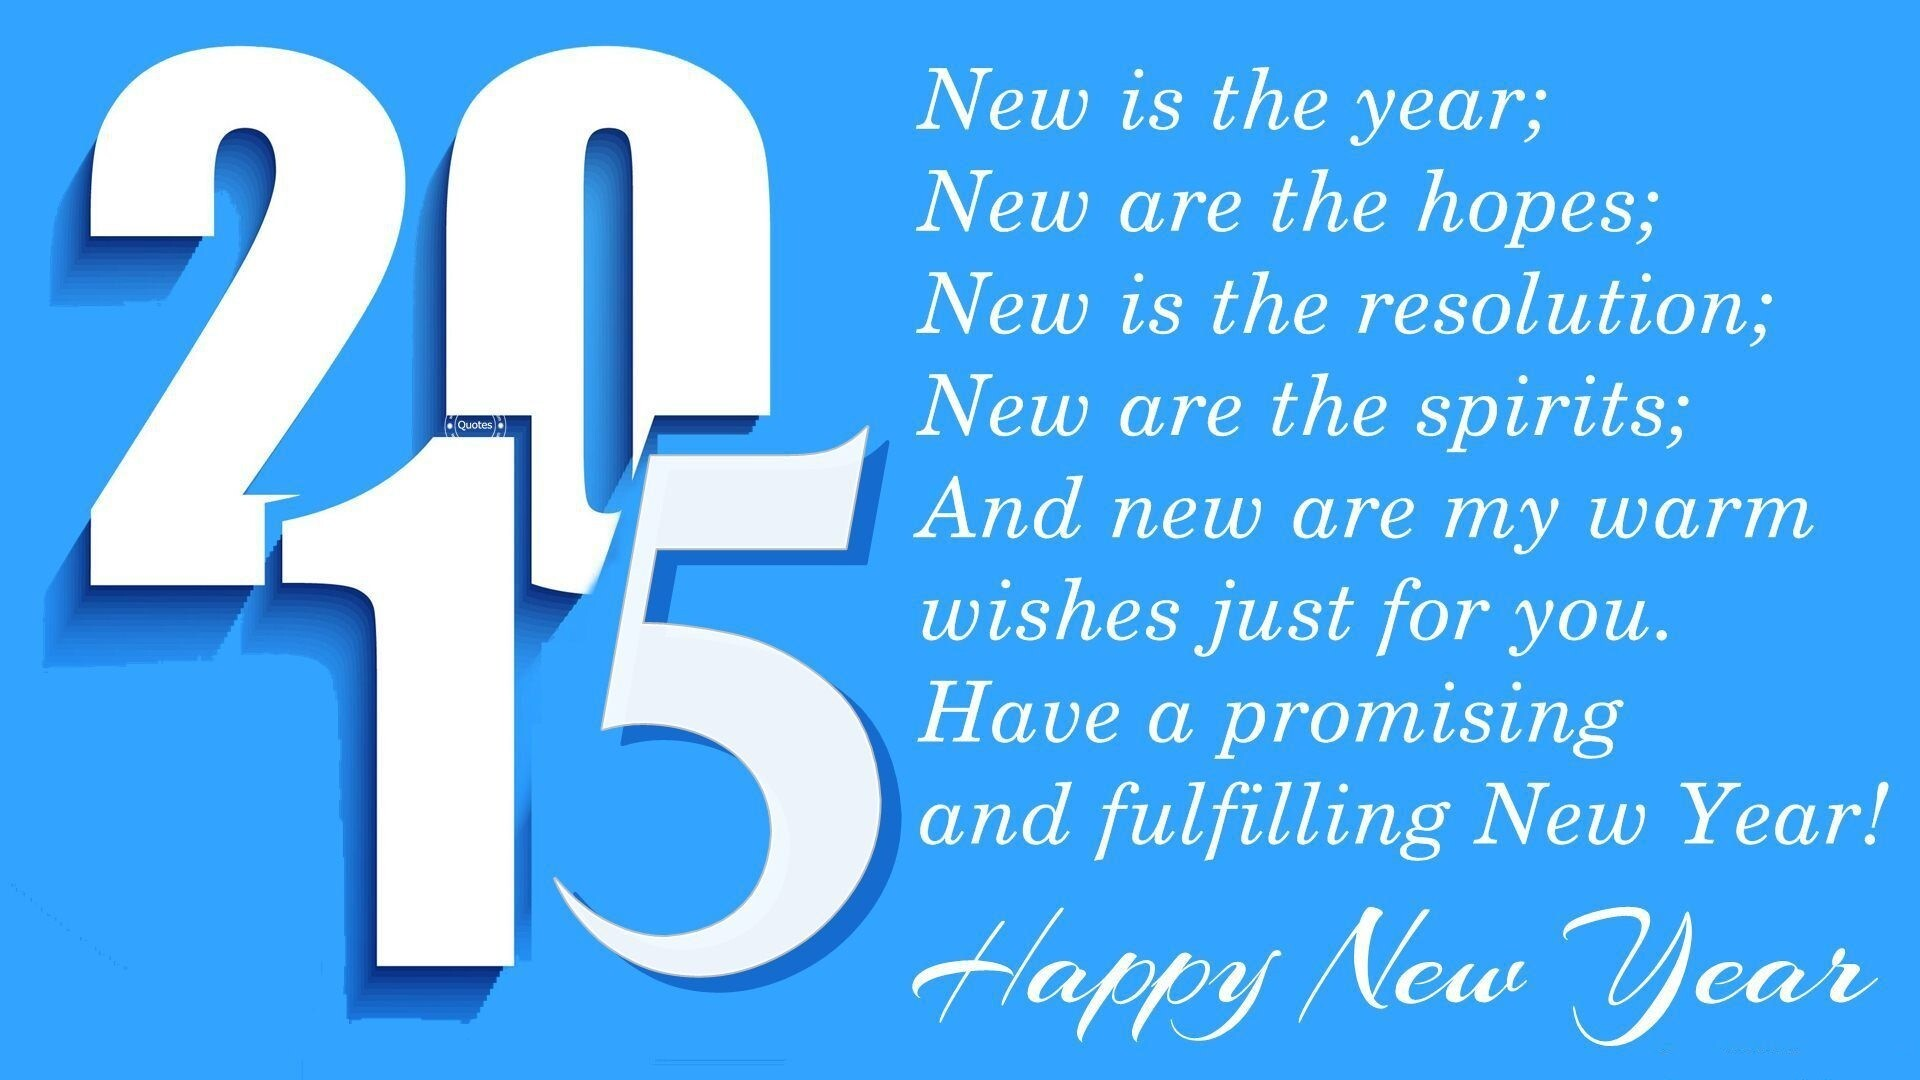 Happy new year 2015 quotes greeting hd wallpaper hd wallpapers m4hsunfo